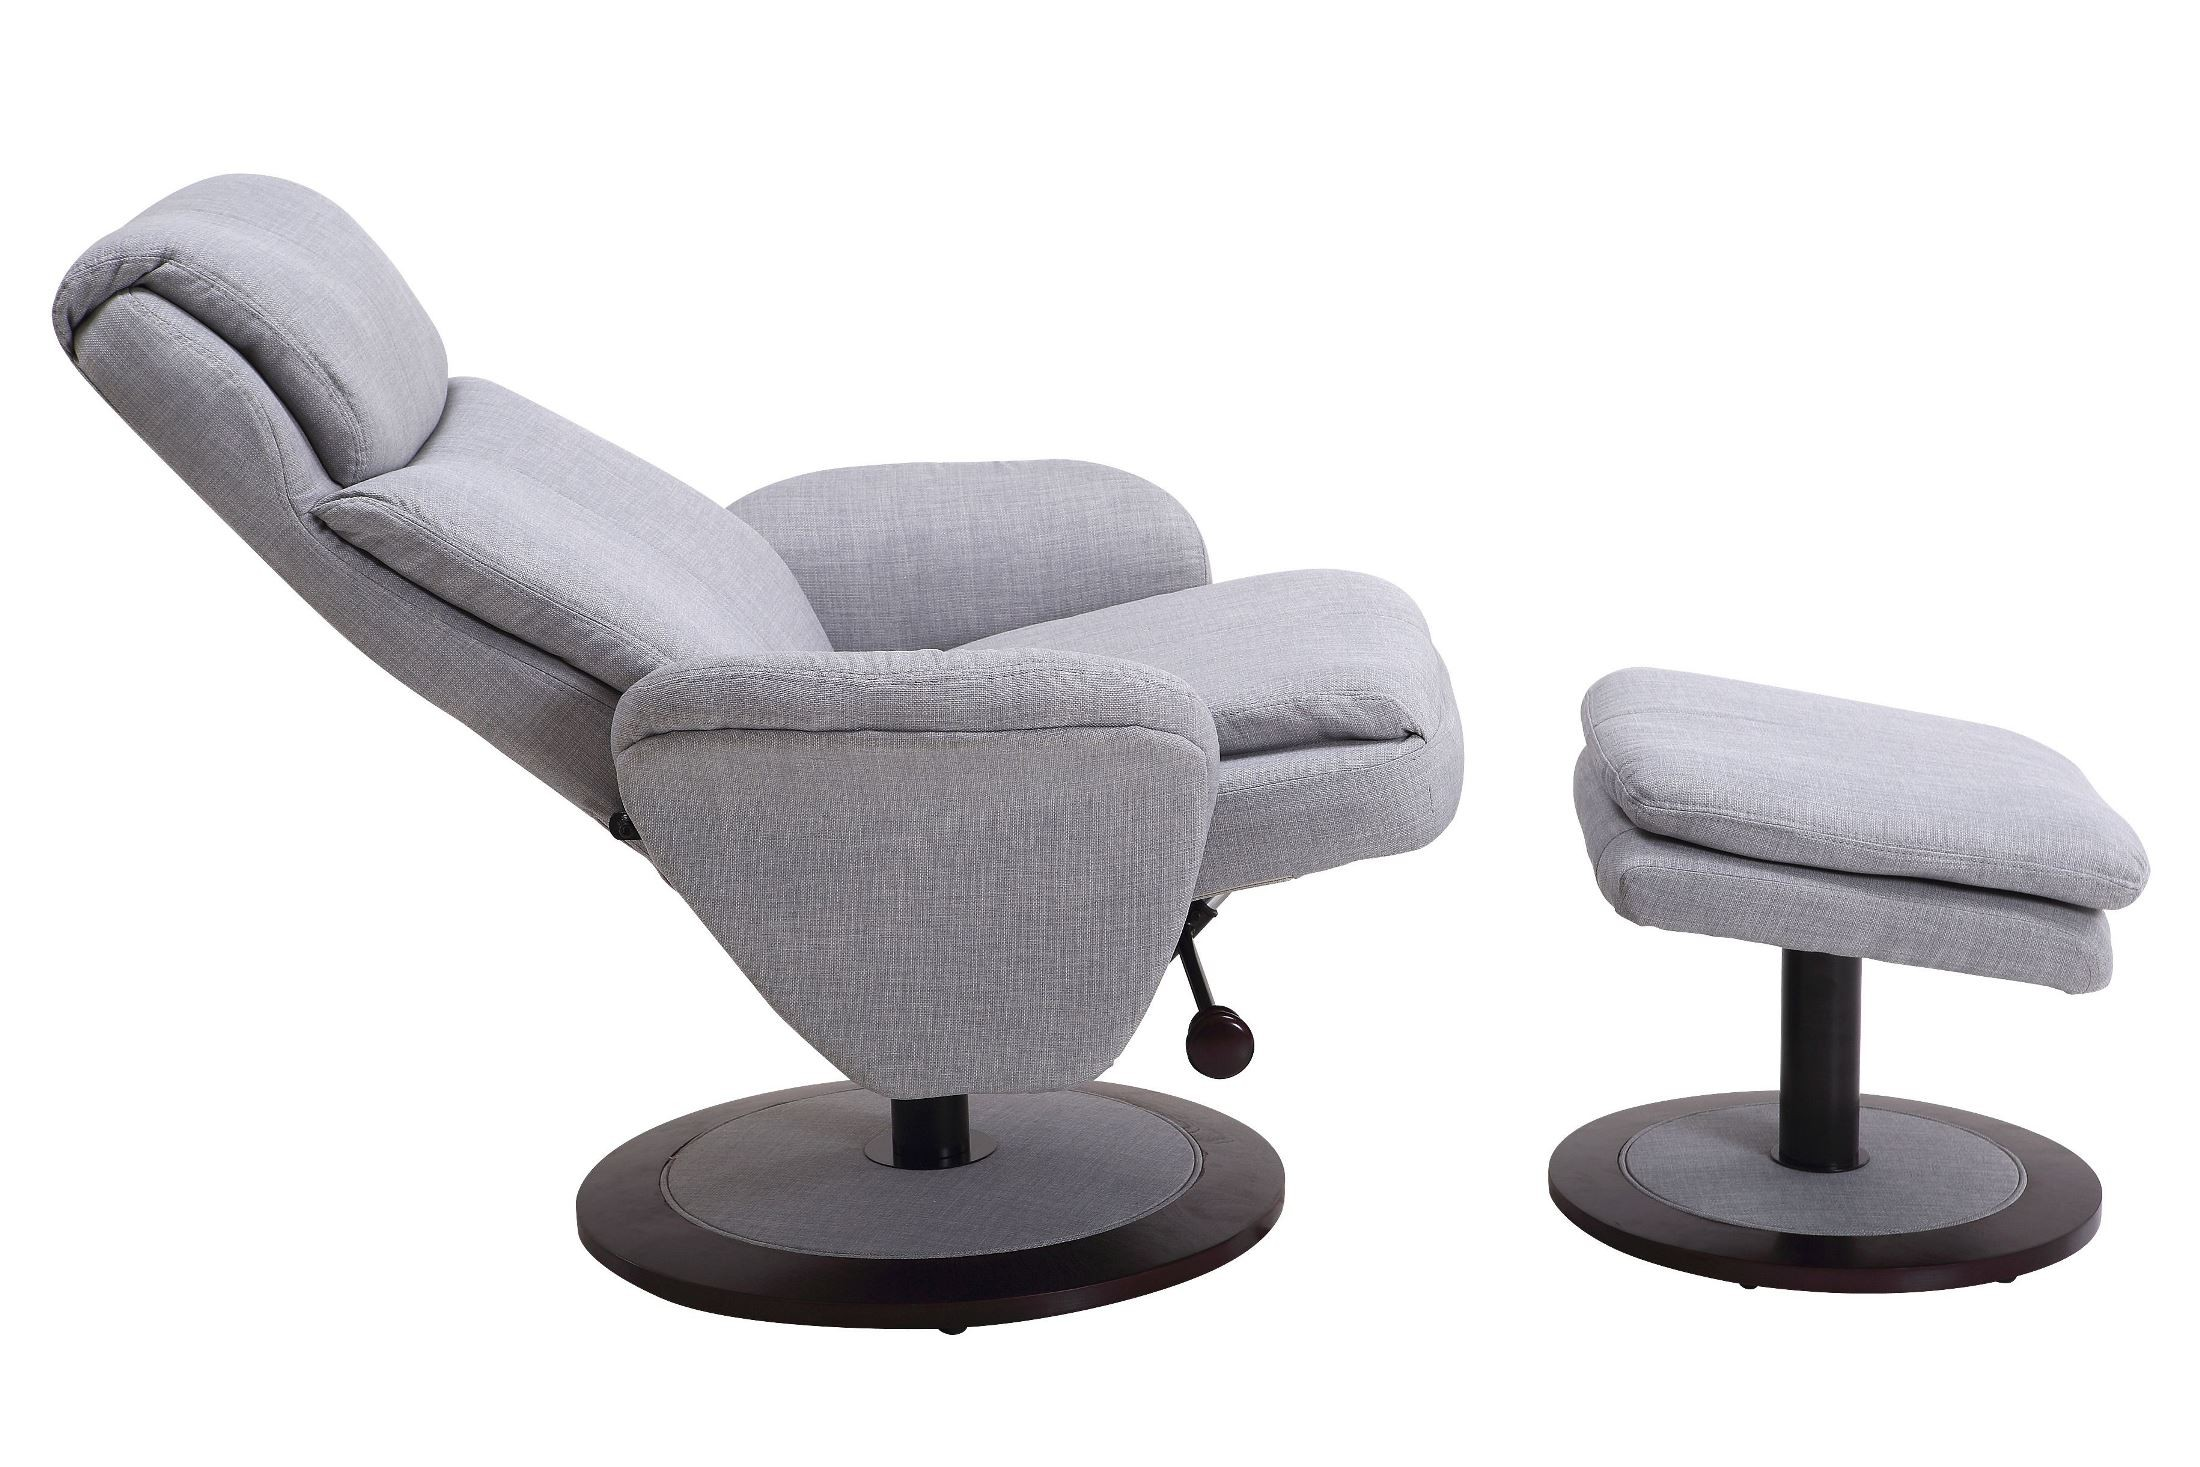 light grey chair used banquet chairs denmark fabric swivel recliner with ottoman